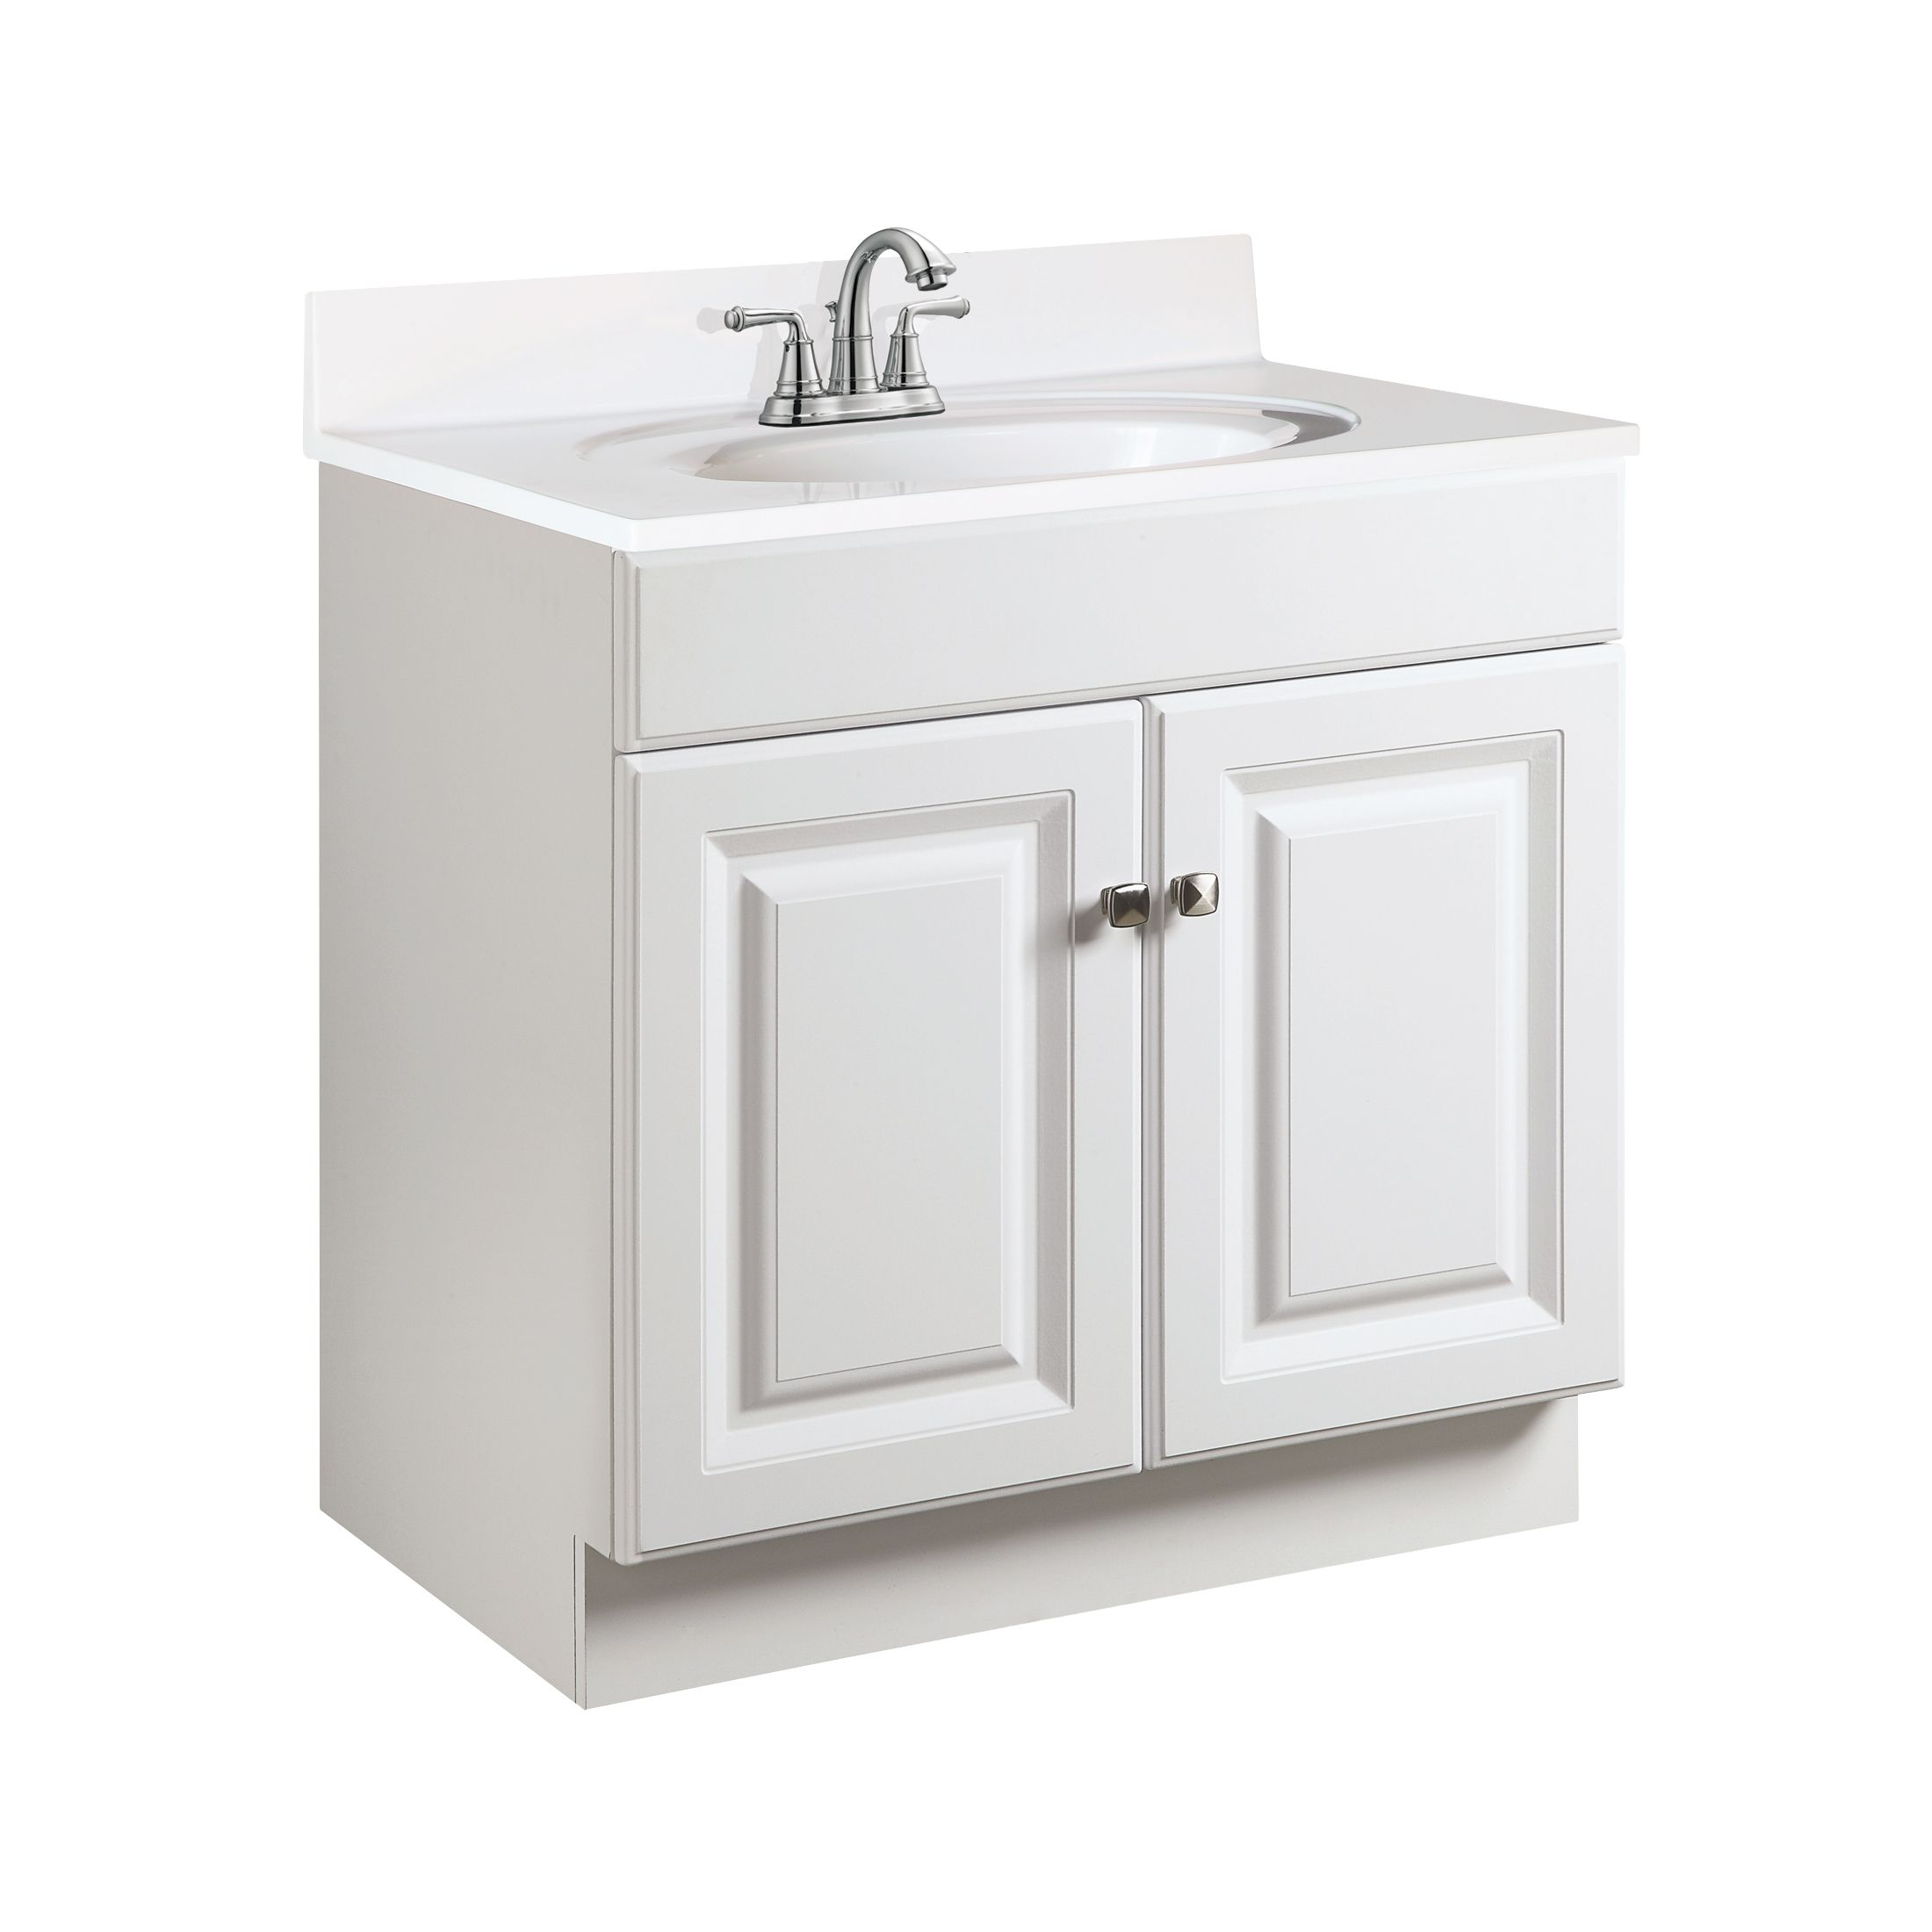 "Wyndham 2-Door Vanity, 24"", White #531939"